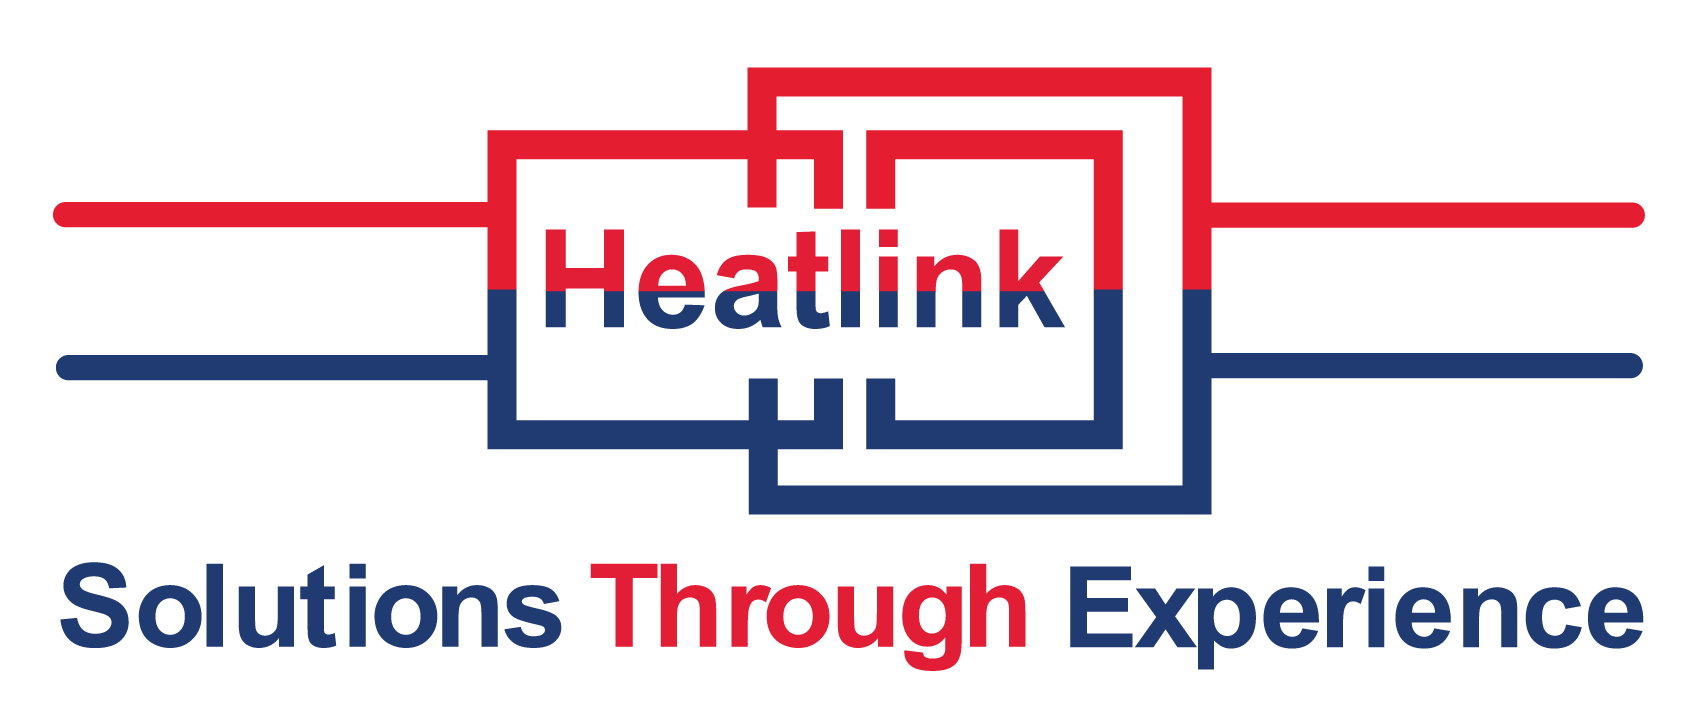 HEATLINK LOGO - Architects / Consultants